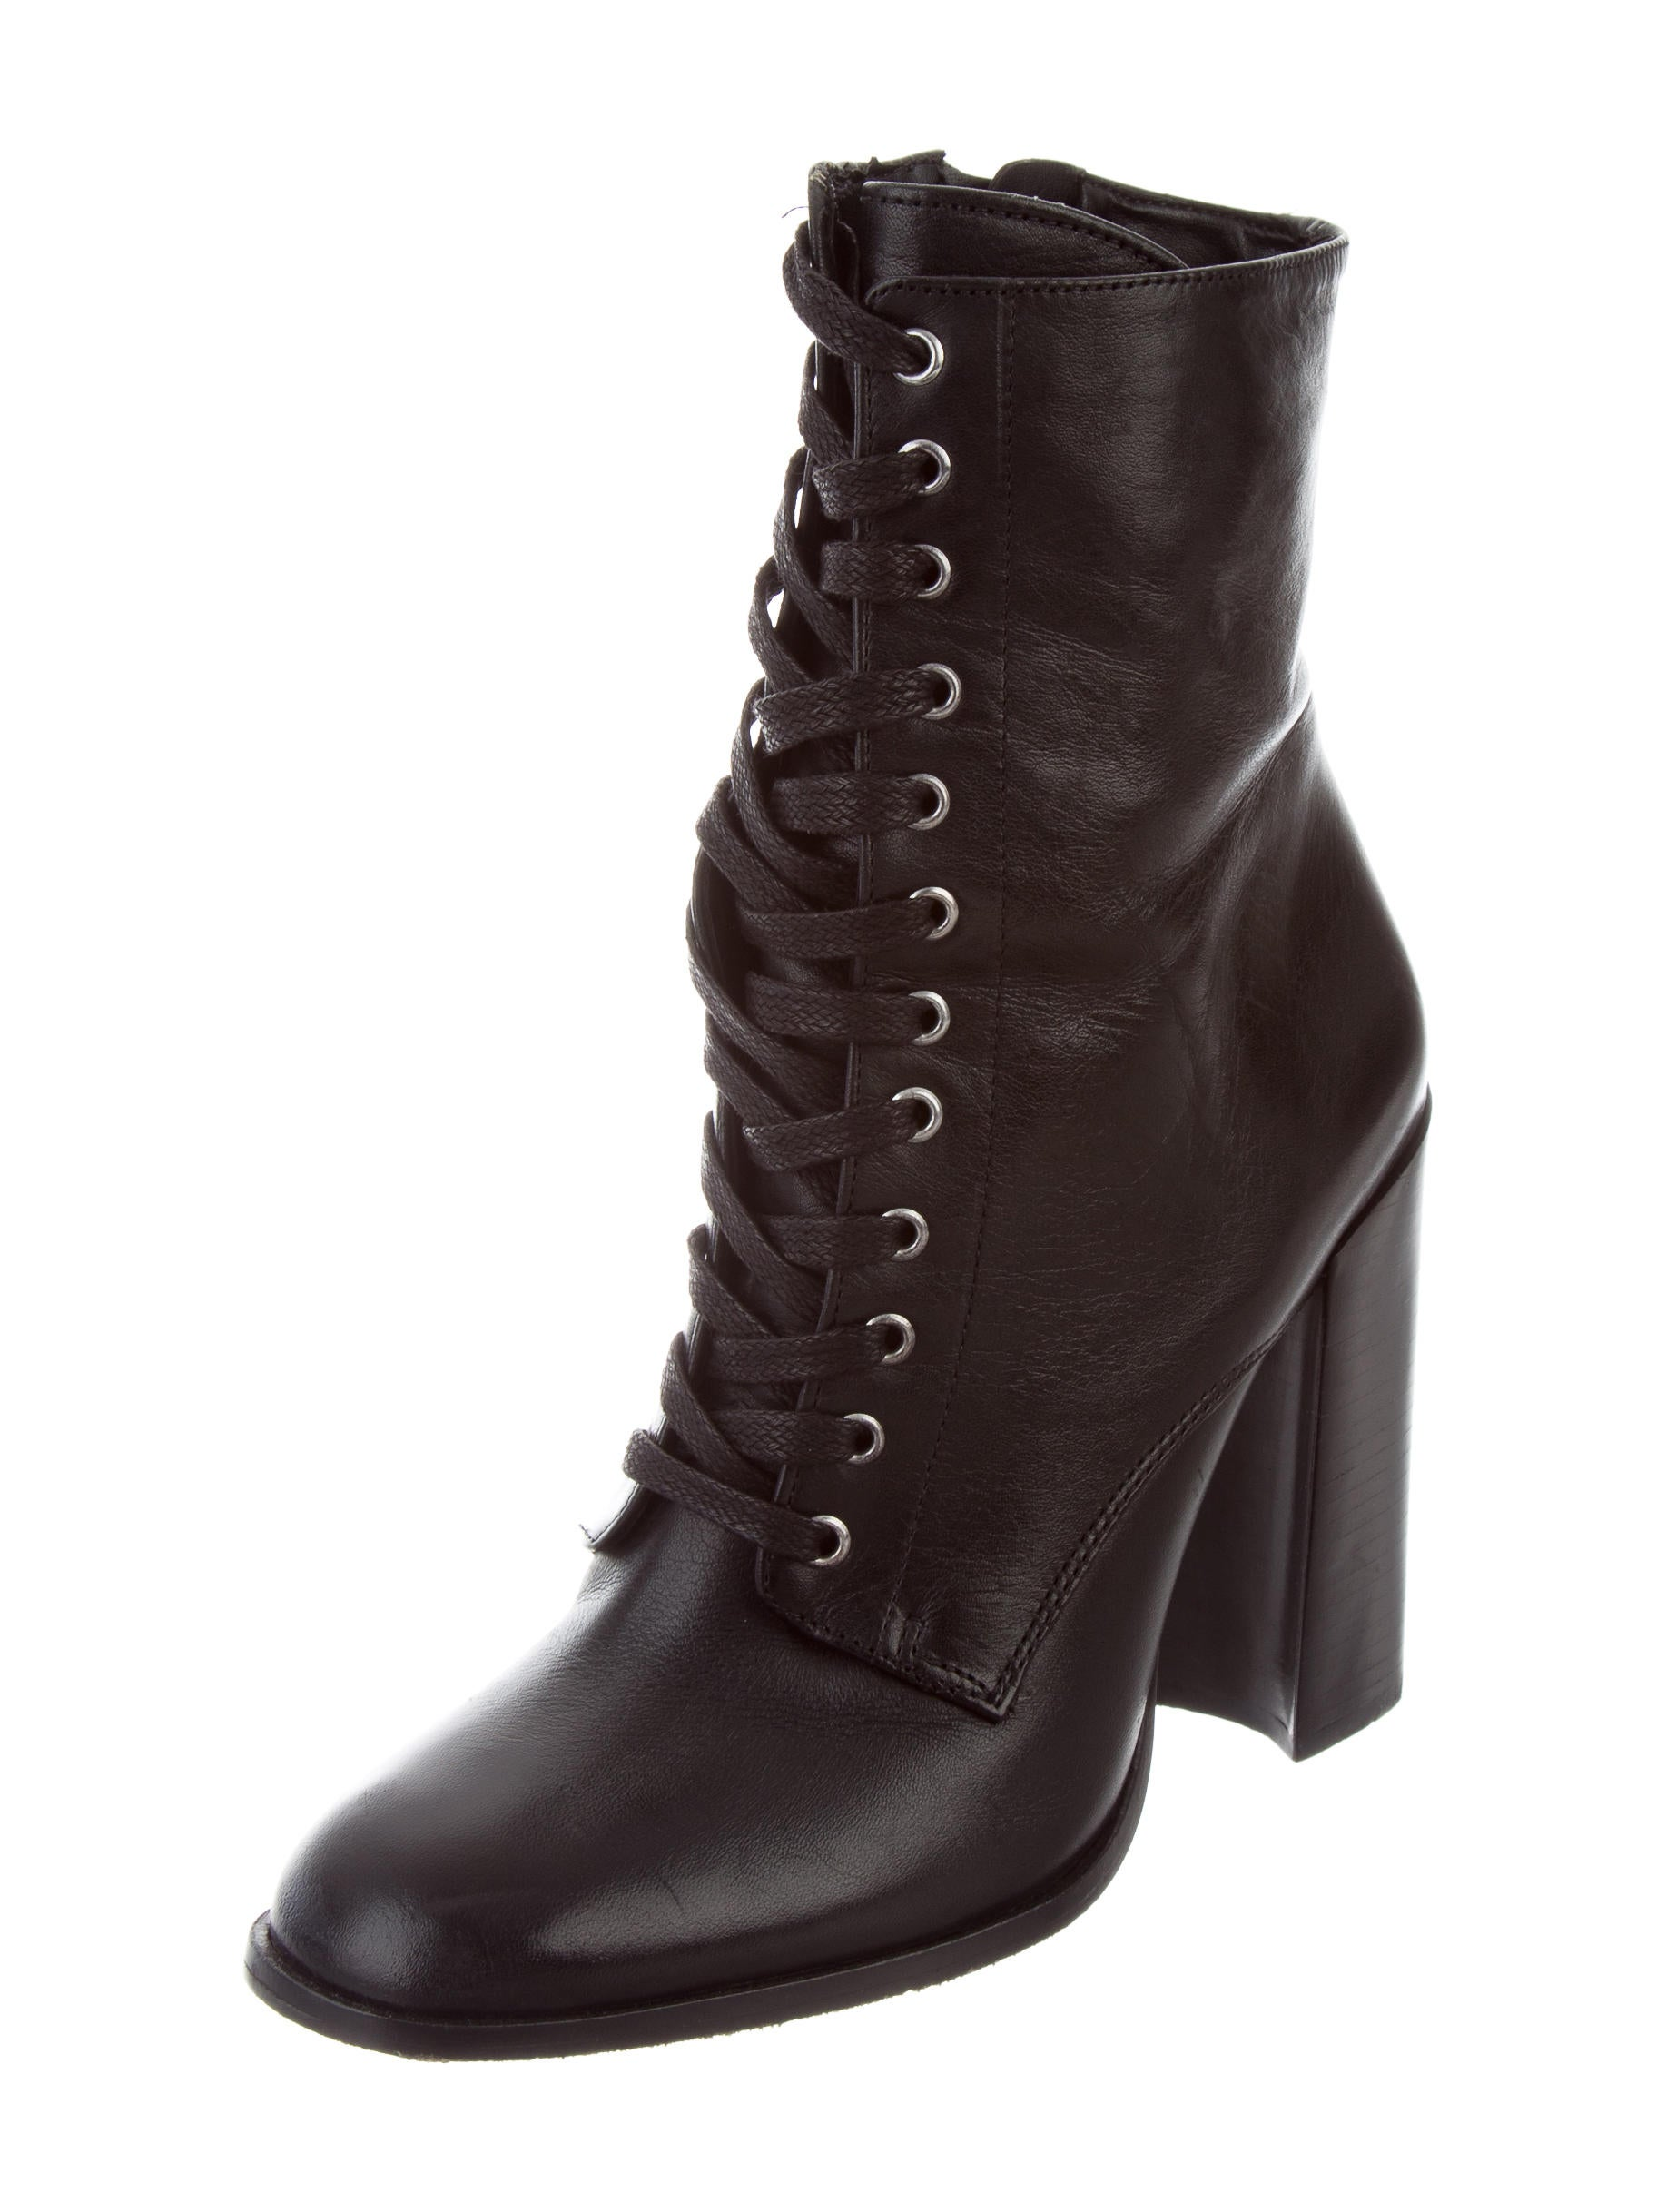 Shop Ankle boots at report2day.ml & browse our latest collection of accessibly priced Ankle boots for Women, in a wide variety of on-trend styles.